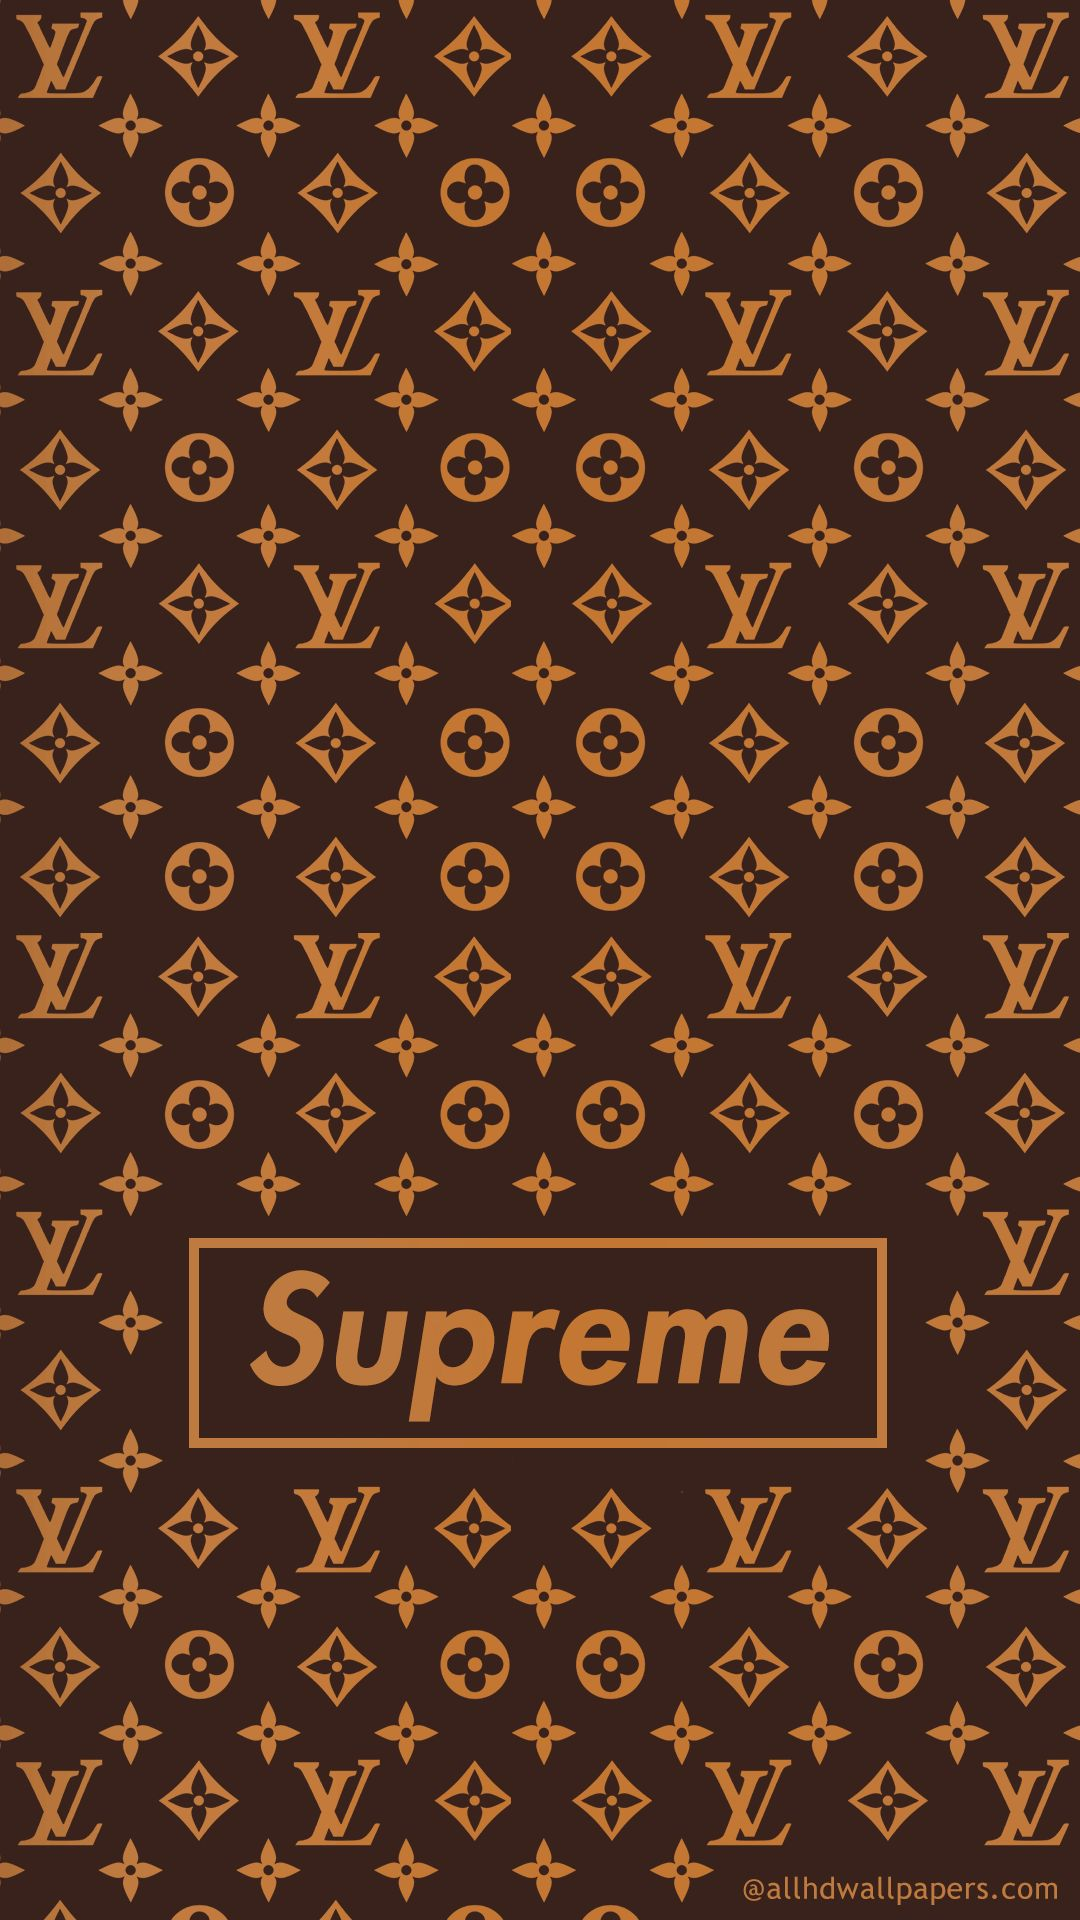 Supreme X Louis Vuitton Iphone Wallpaper